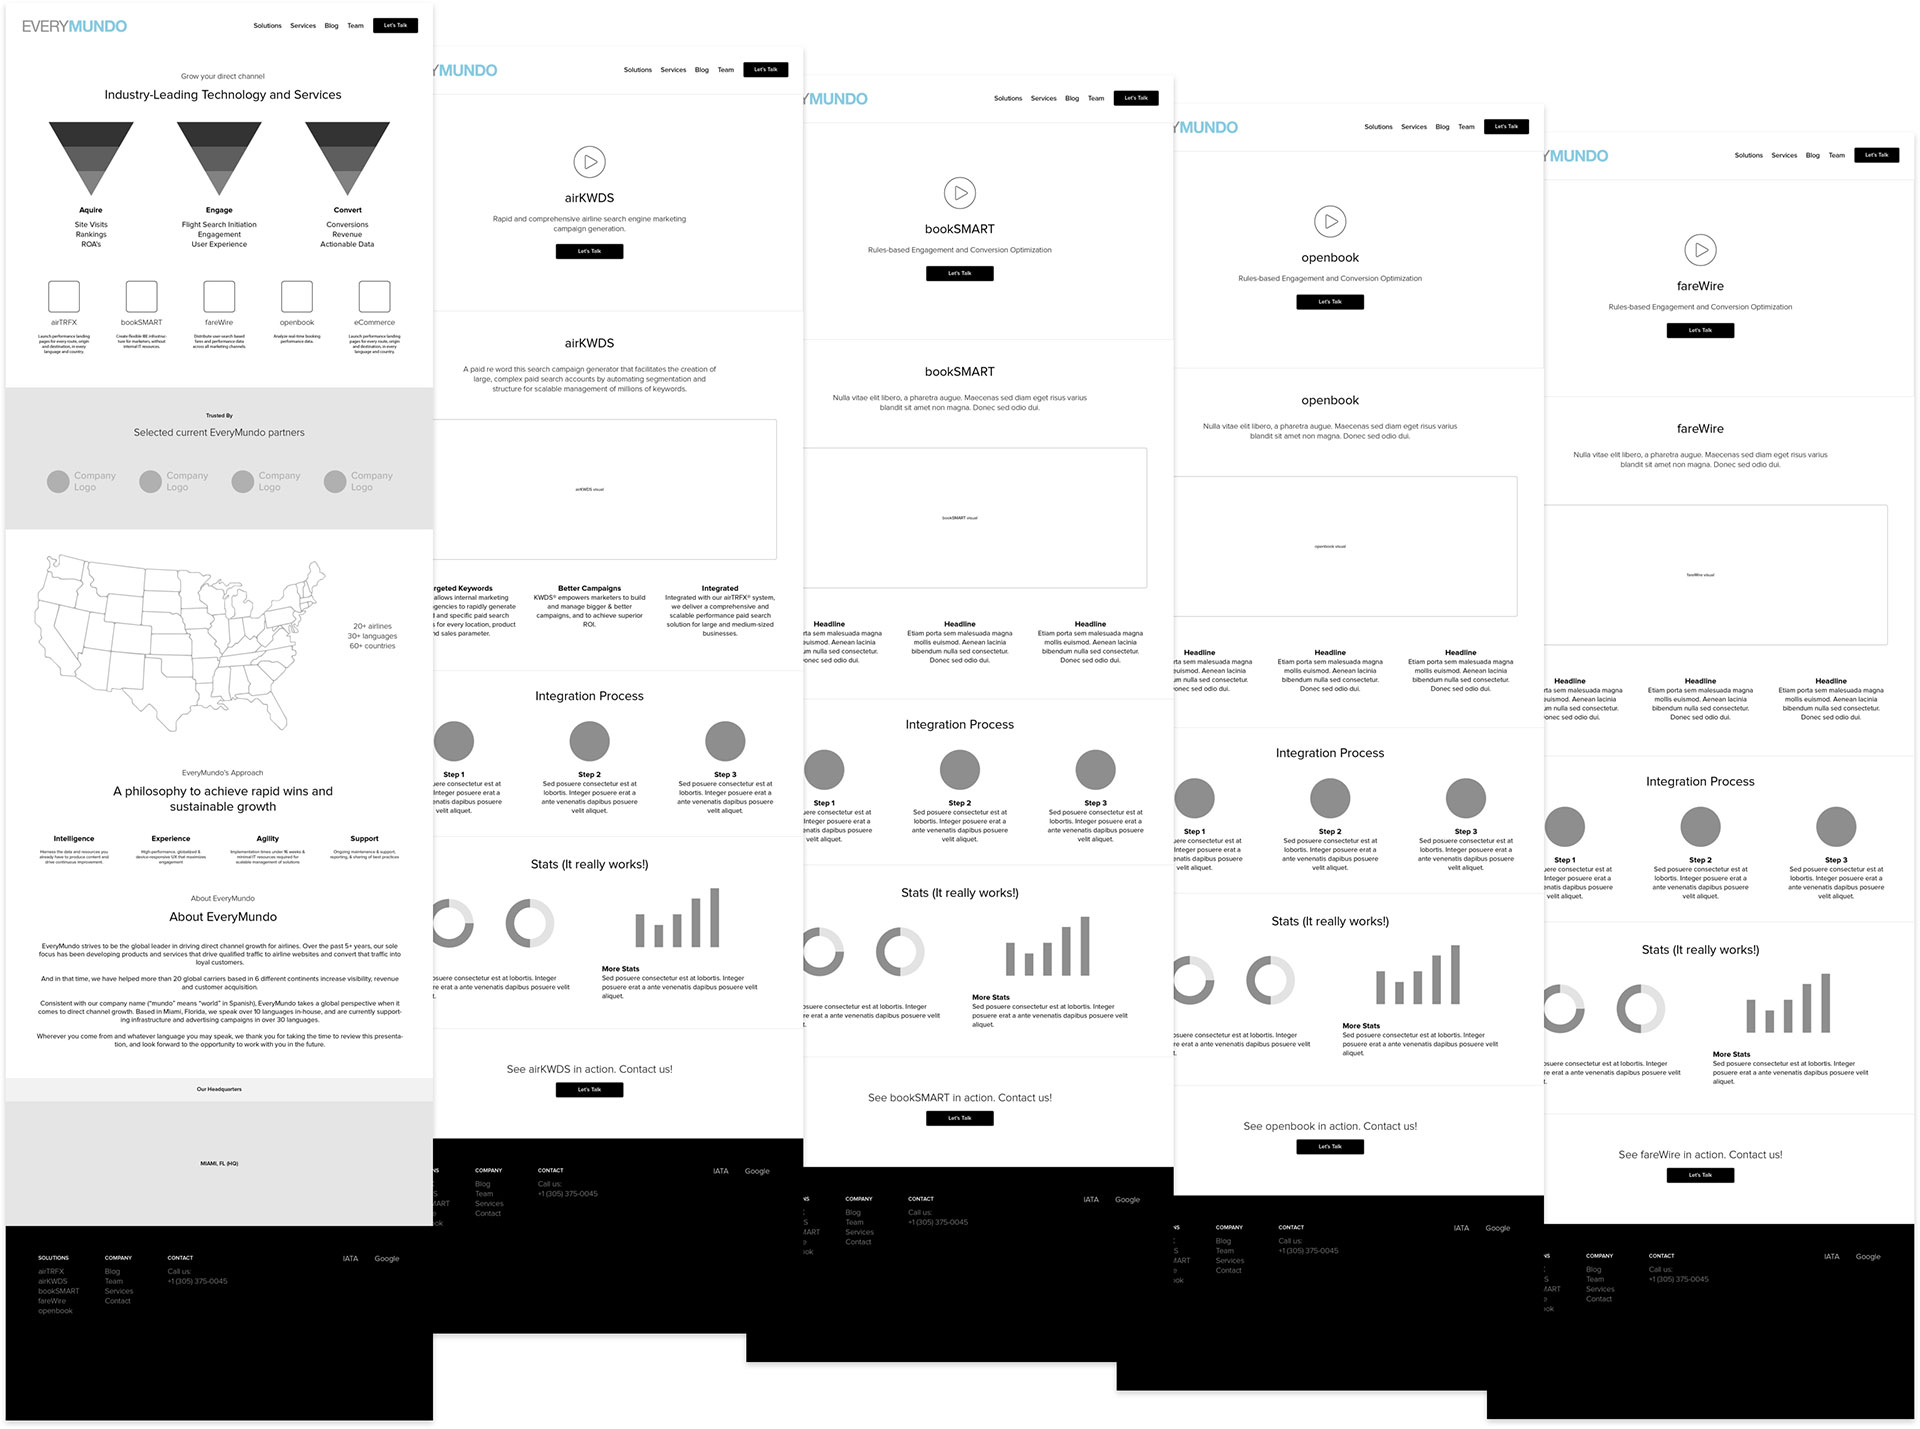 Wireframes conveying the user experience of EveryMundo